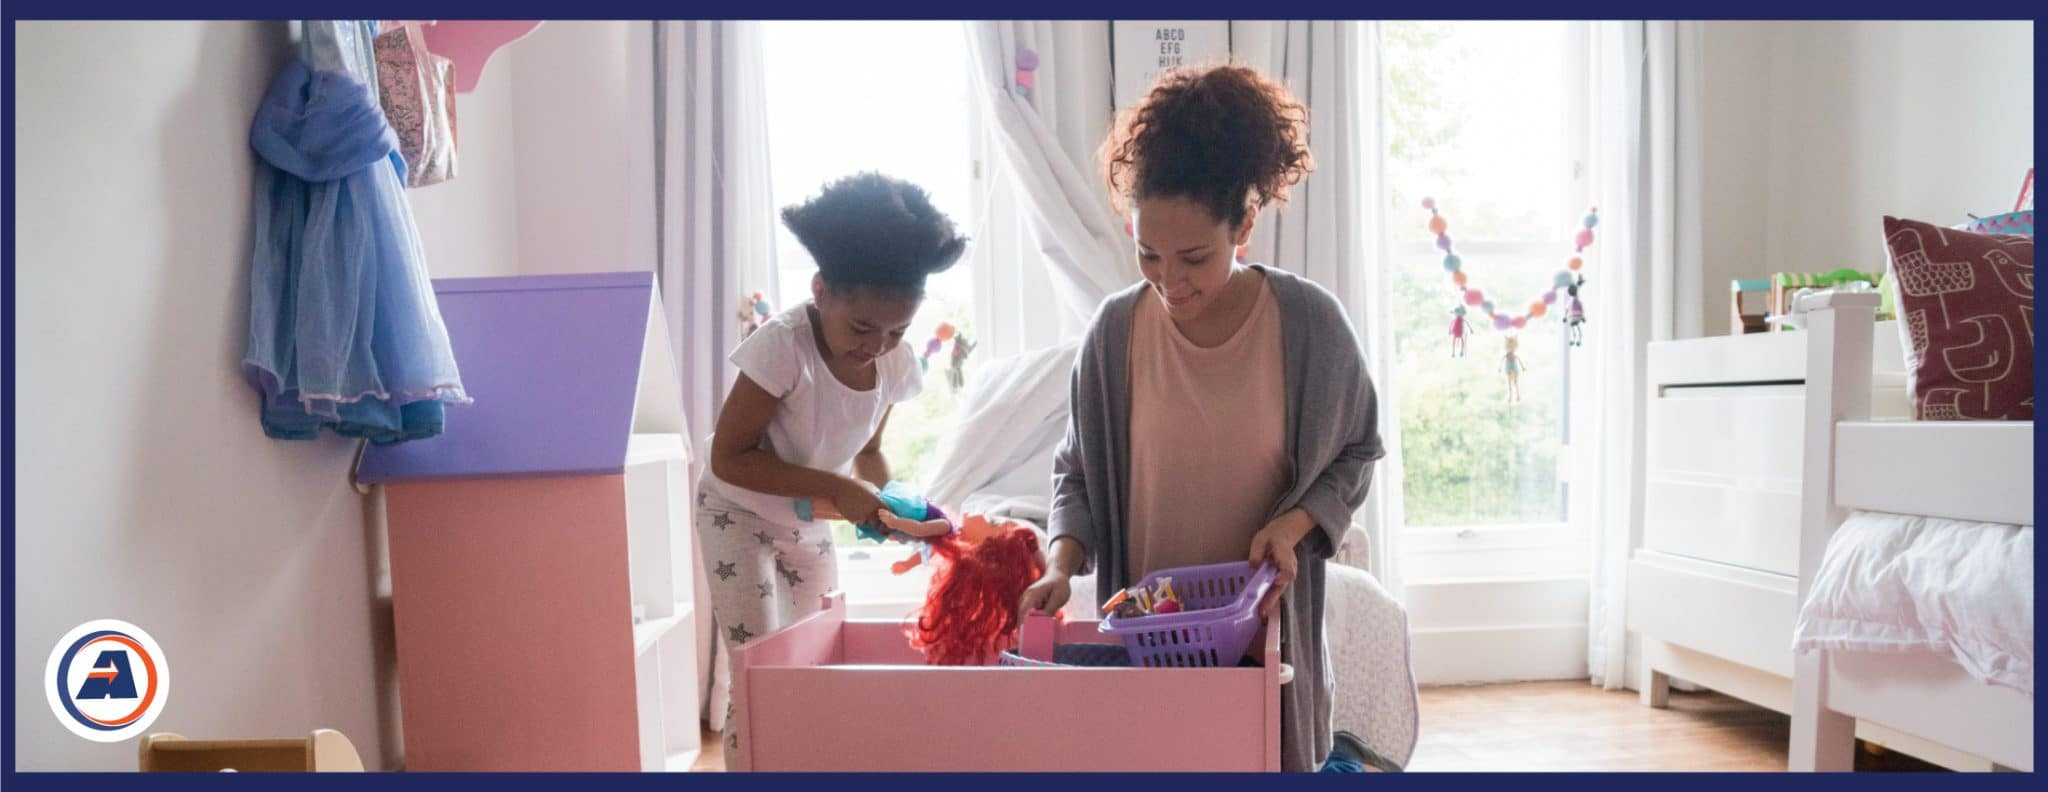 7 Unique Ways to Store and Organize Your Children's Toys